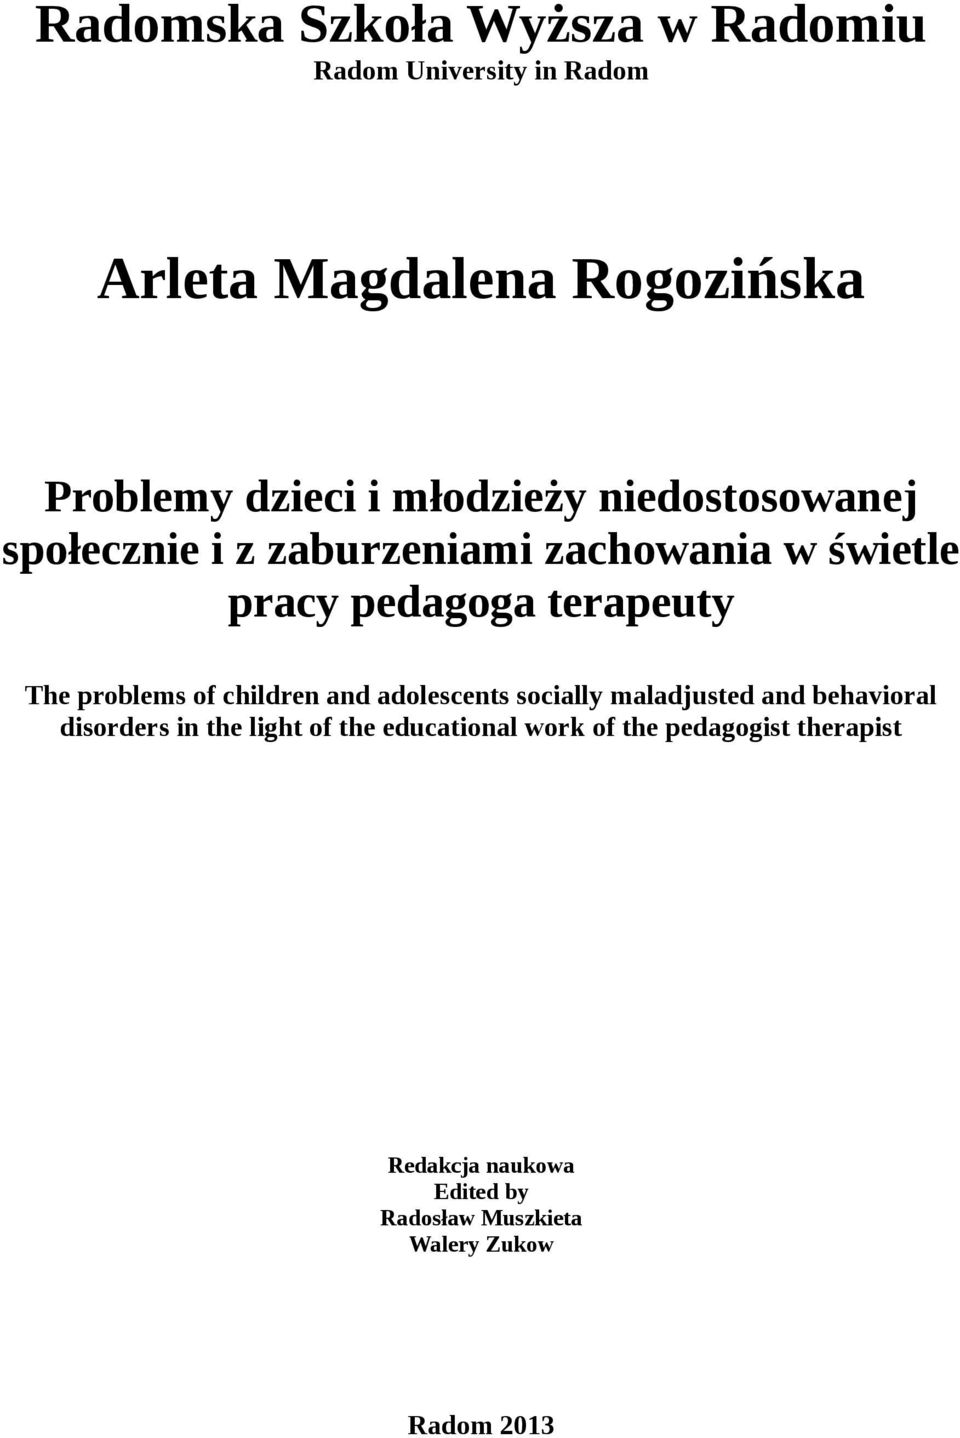 problems of children and adolescents socially maladjusted and behavioral disorders in the light of the